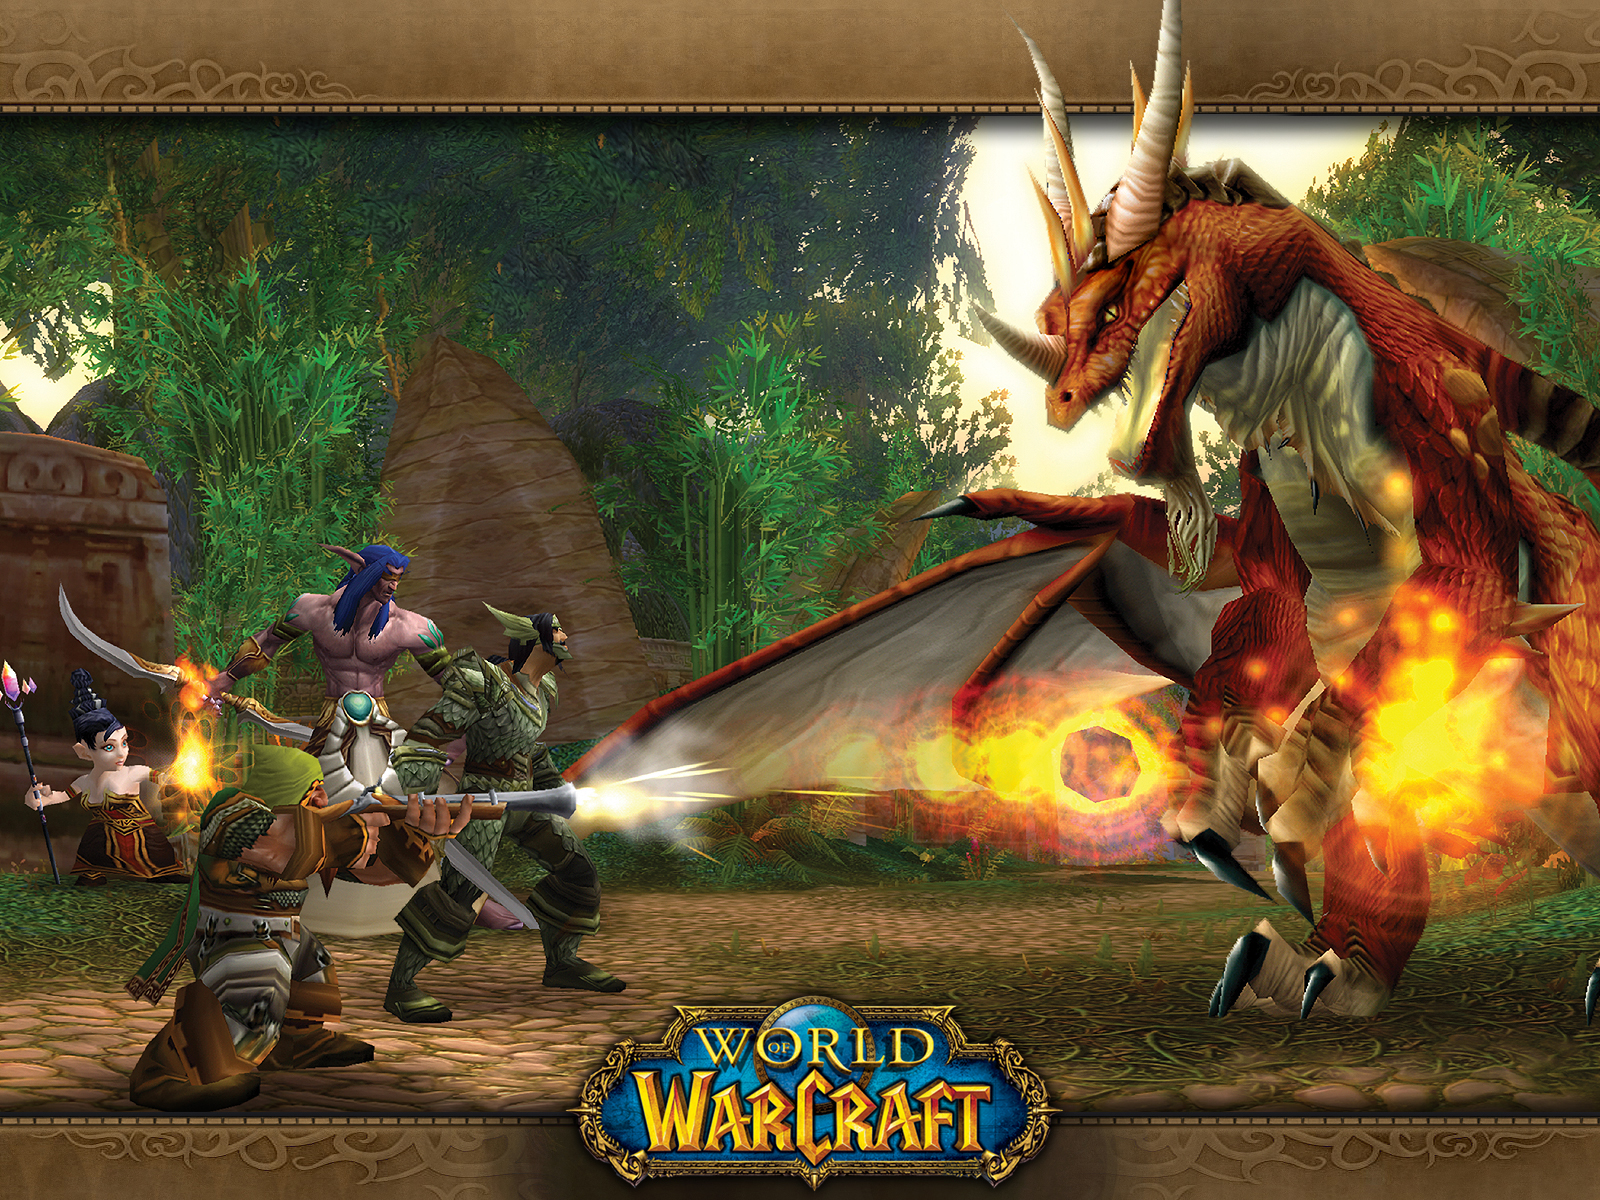 http://1.bp.blogspot.com/-hFyb6iqyS60/TrdoA8SQv1I/AAAAAAAADPM/pdrNAH2ZSbY/s1600/World-of-Warcraft-dekstop-Wallpapers-2.jpg